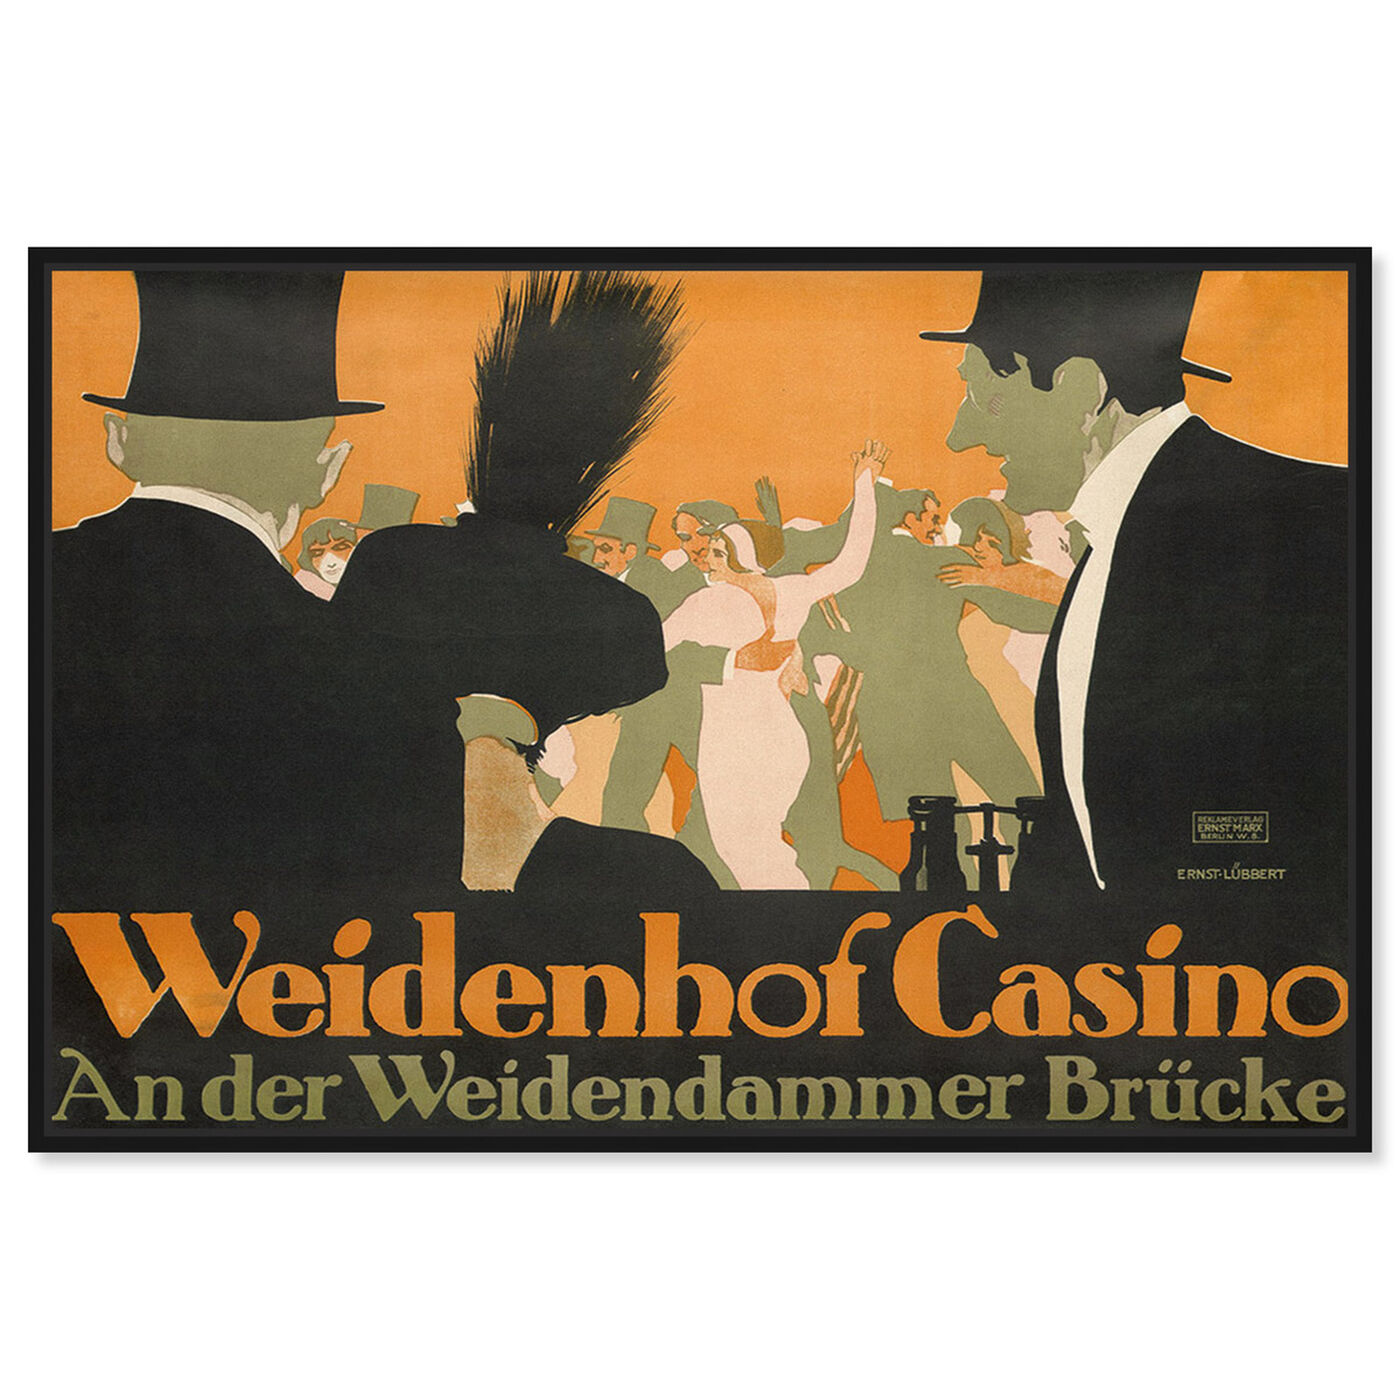 Front view of Weidenhof Casino featuring advertising and posters art.